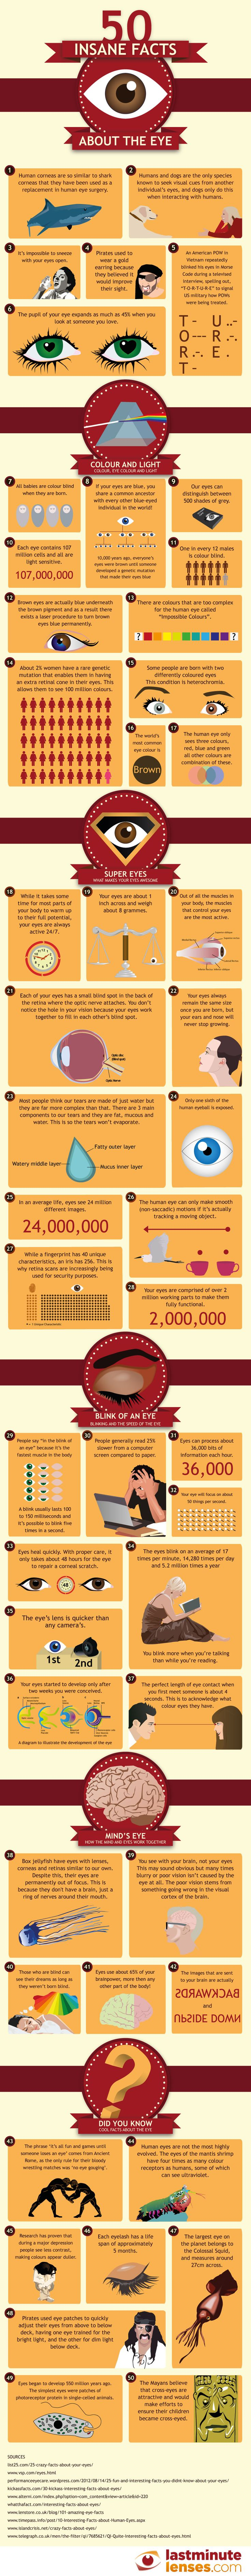 More Than Meets The Eye: 50 Facts About Your Eyes